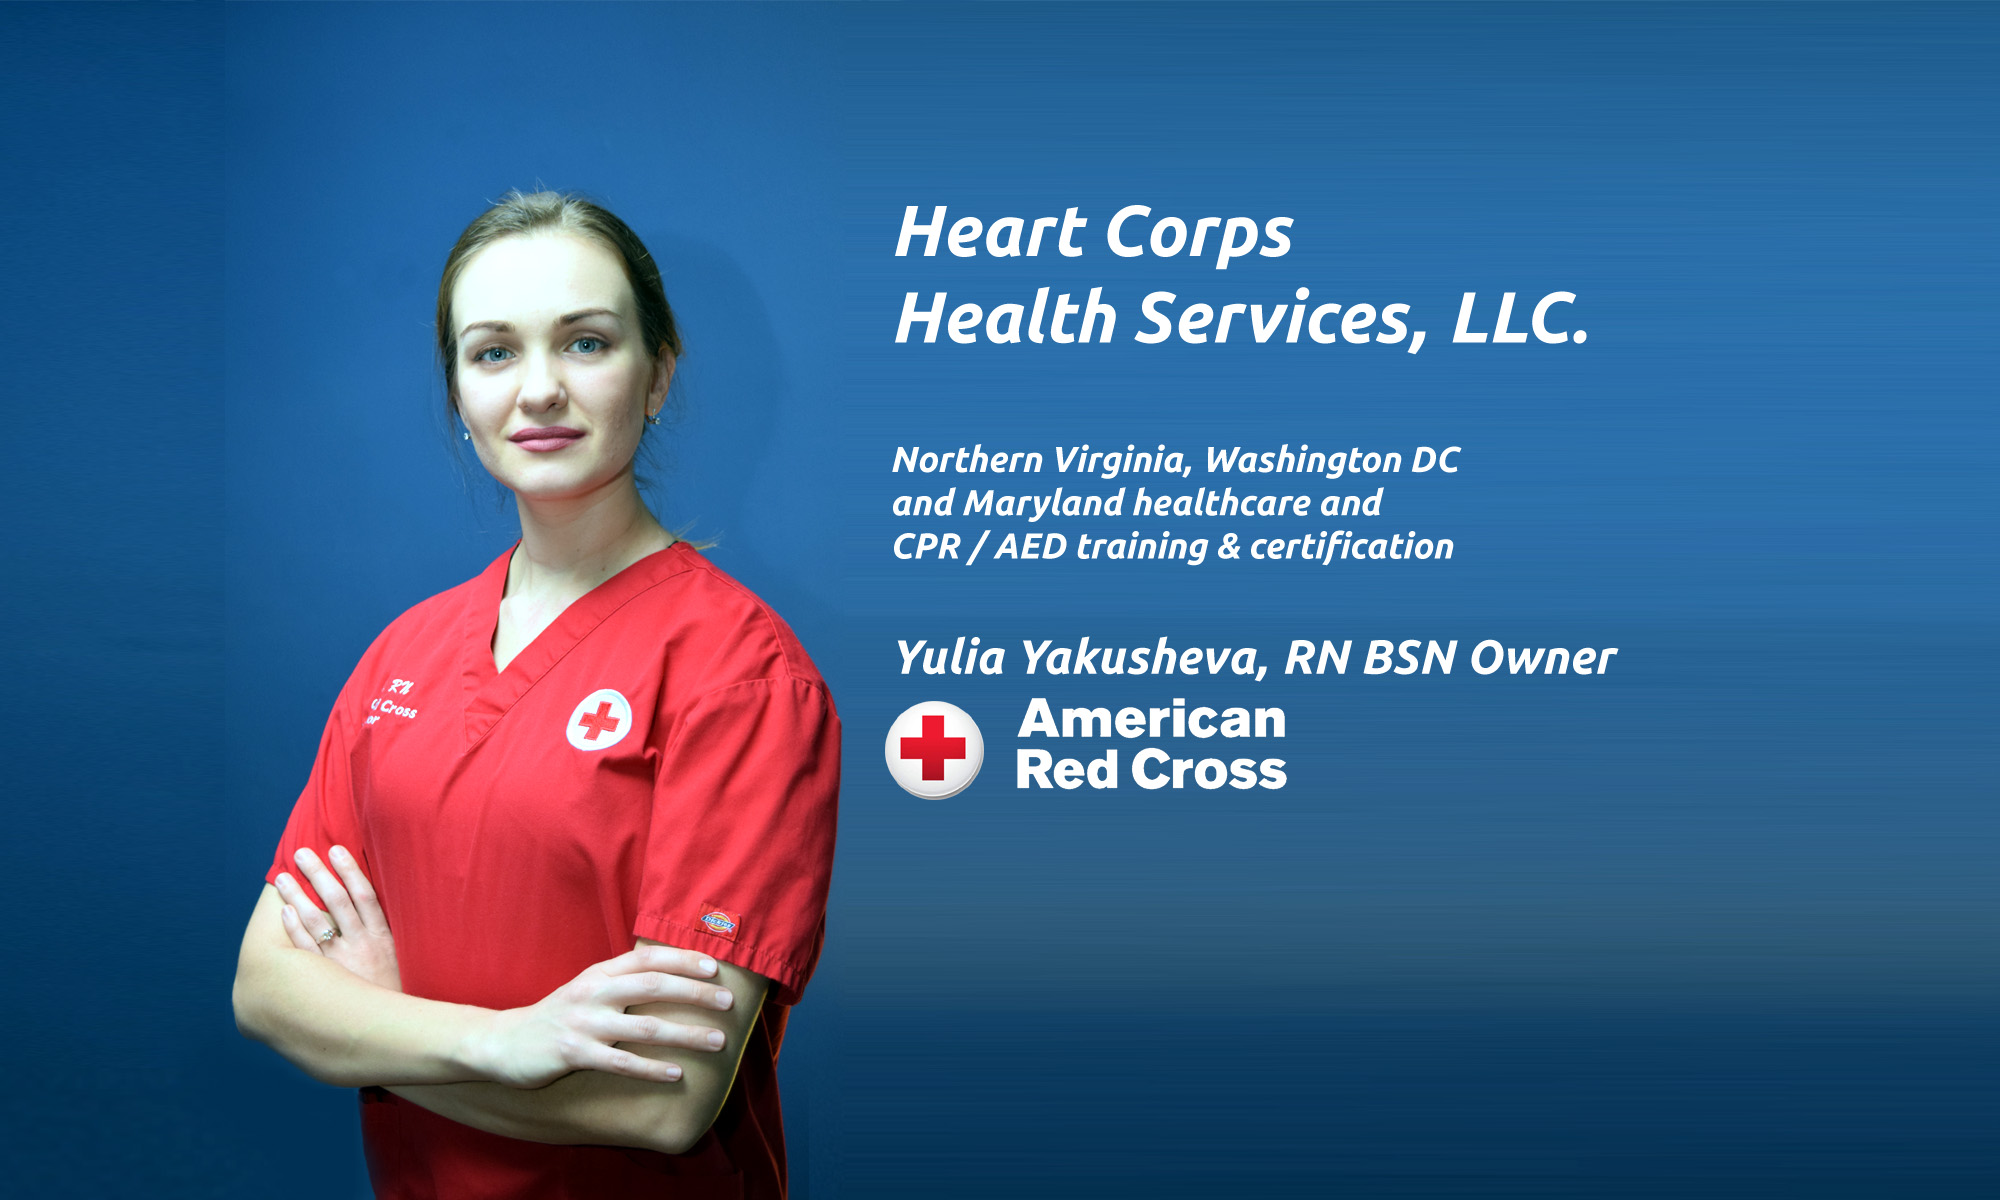 Heart Corps Health Services